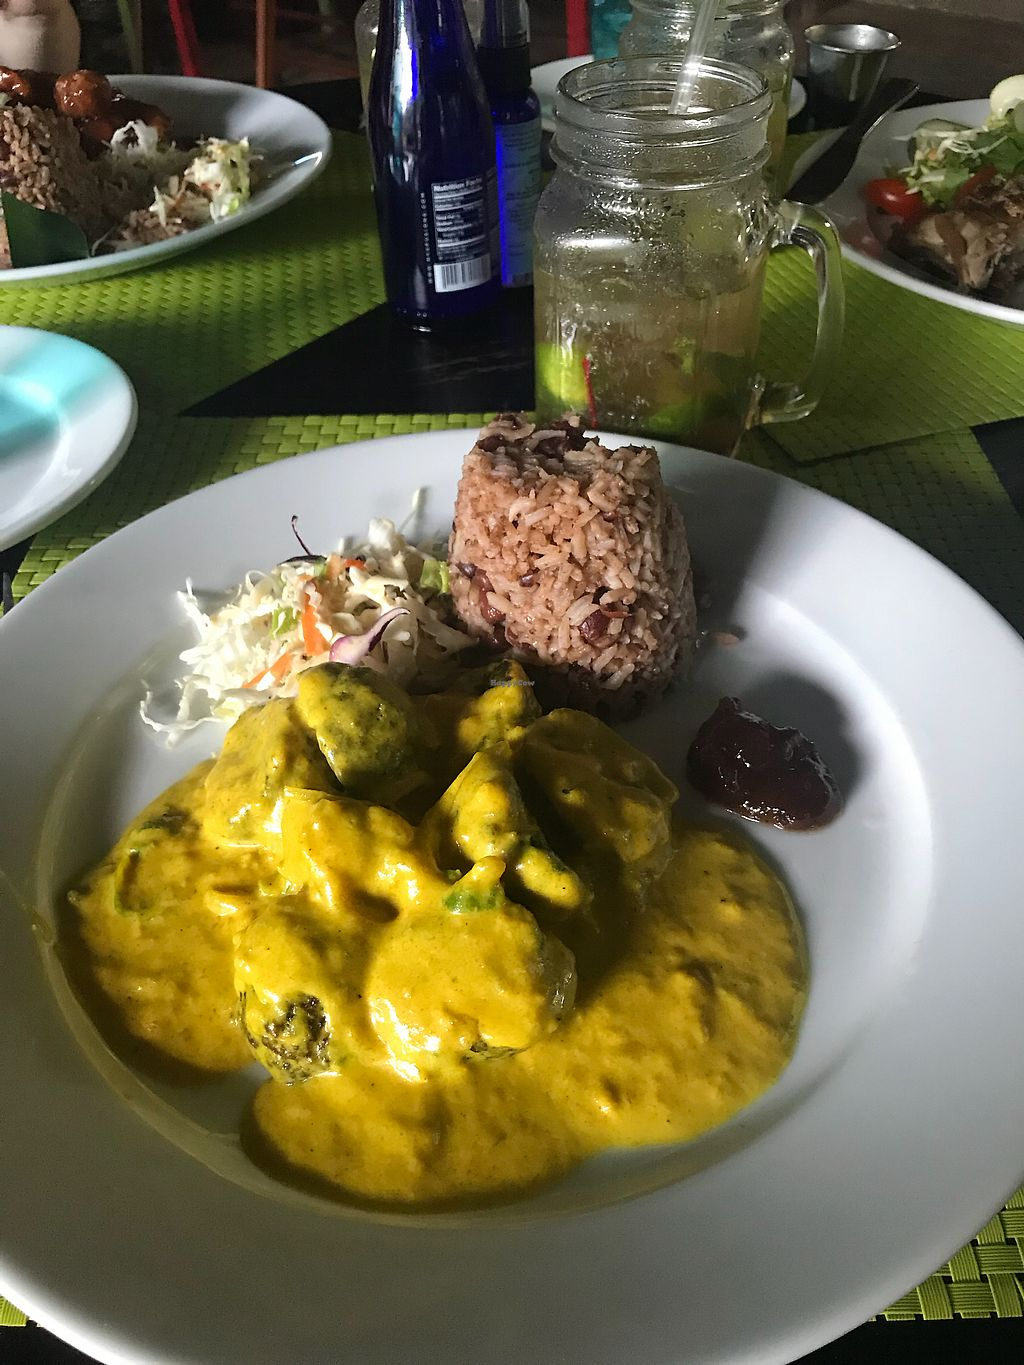 "Photo of Miss T's Kitchen  by <a href=""/members/profile/TheAllisonBauer"">TheAllisonBauer</a> <br/>Veggie balls in coconut curry <br/> December 4, 2017  - <a href='/contact/abuse/image/63560/332290'>Report</a>"